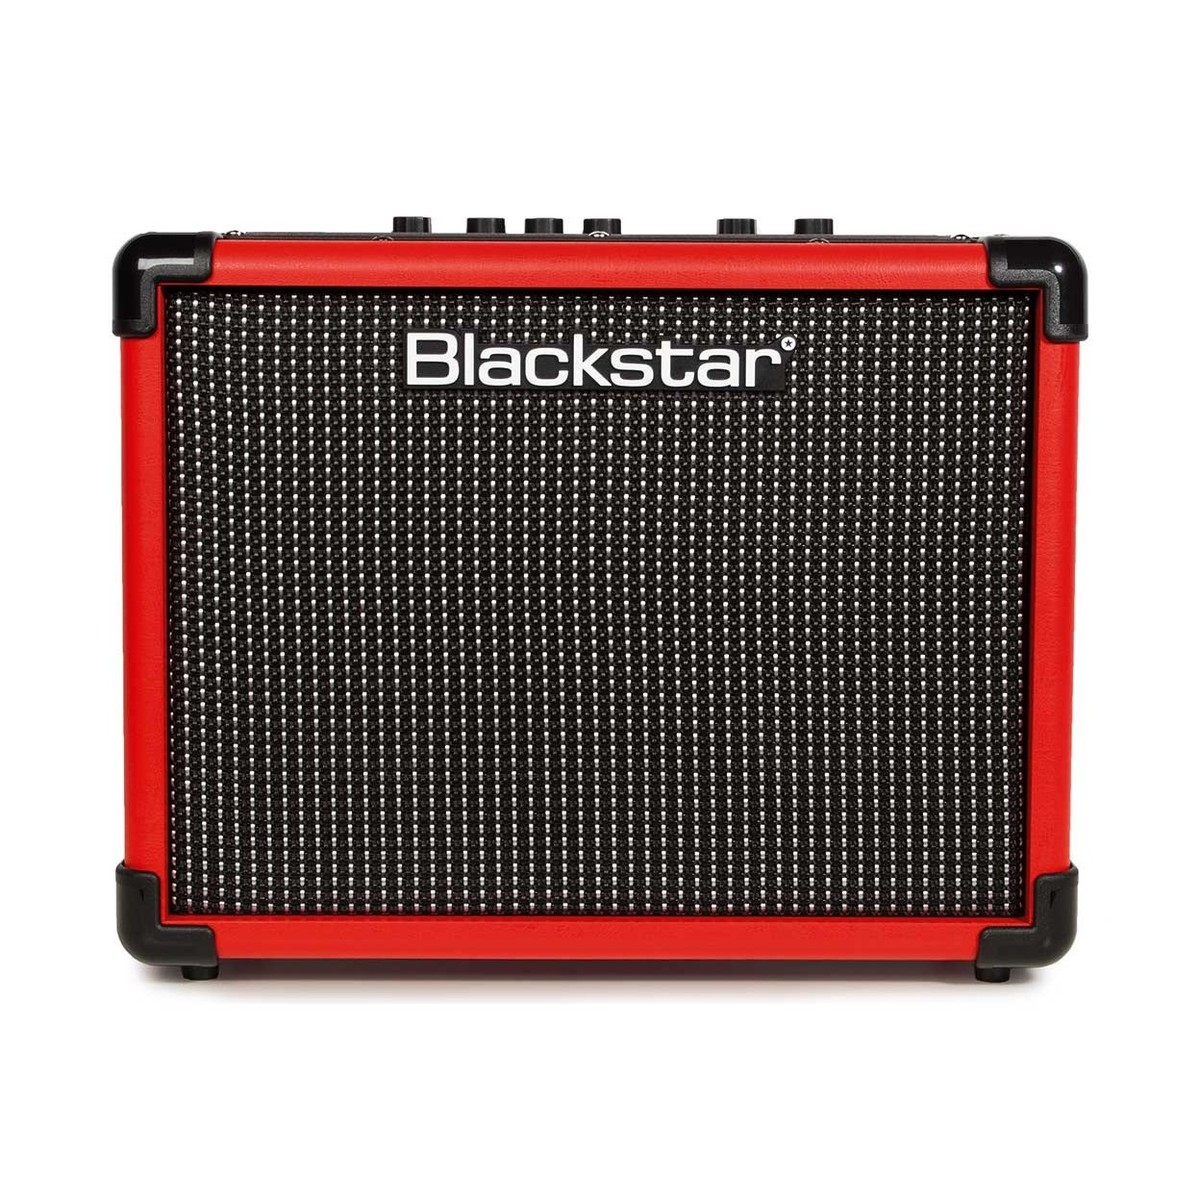 blackstar id core 10 stereo v2 red at gear4music. Black Bedroom Furniture Sets. Home Design Ideas